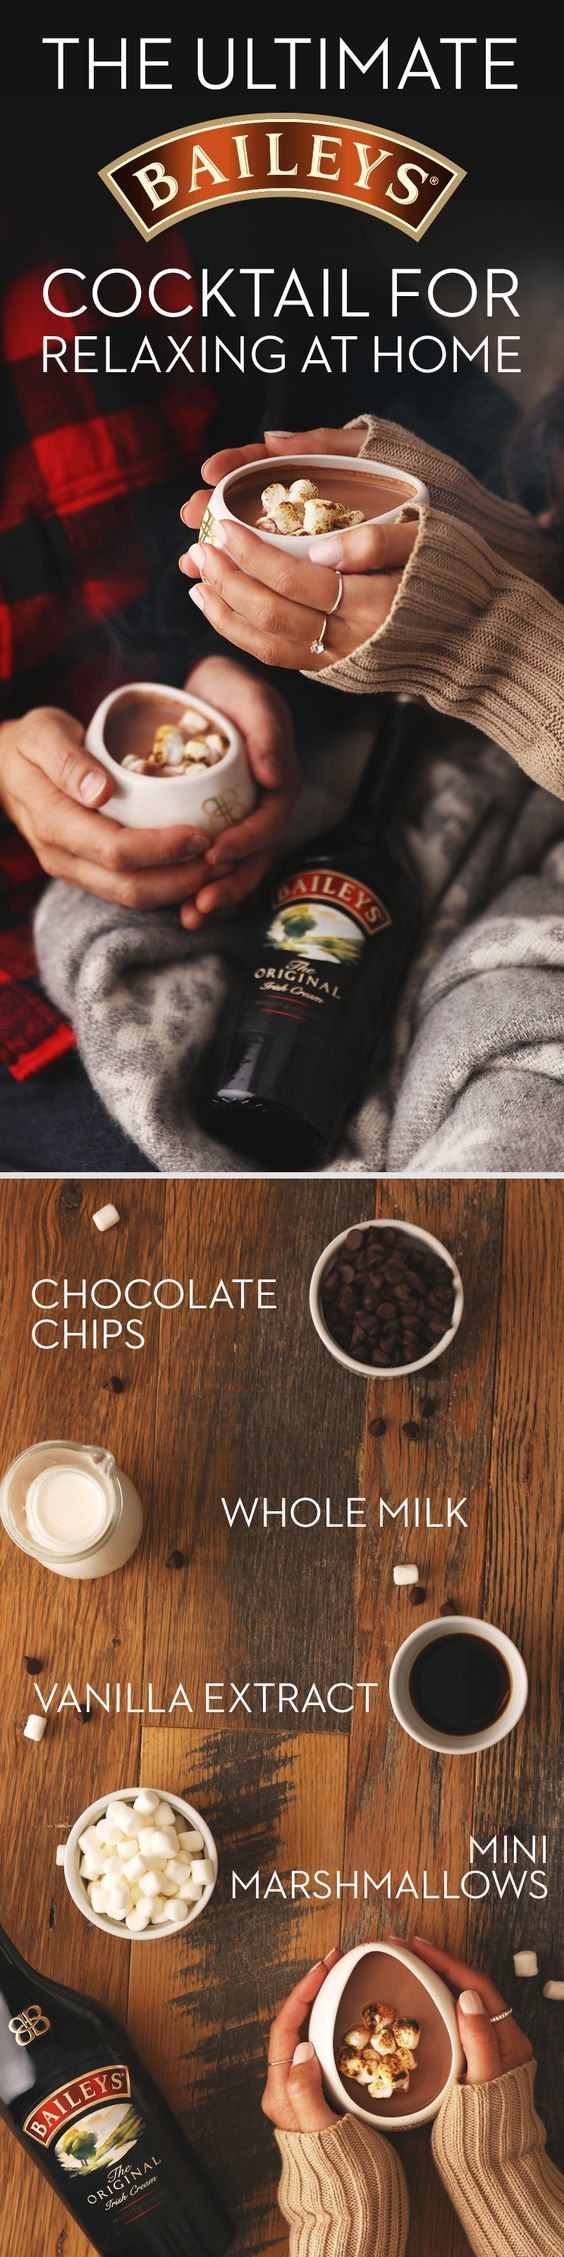 Treat yourself (and your guests!) with this Baileys Hot Chocolate recipe. It's not only delicious - it's also served in a soothing hug mug for added warmth and comfort! Wind down after a fun night by grabbing a blanket, hugging your mug, and topping it with marshmallows for an added treat to this winter cocktail. Serves 2: Prepare 2 cups of hot chocolate, add 3.5oz Baileys and top with mini marshmallows.